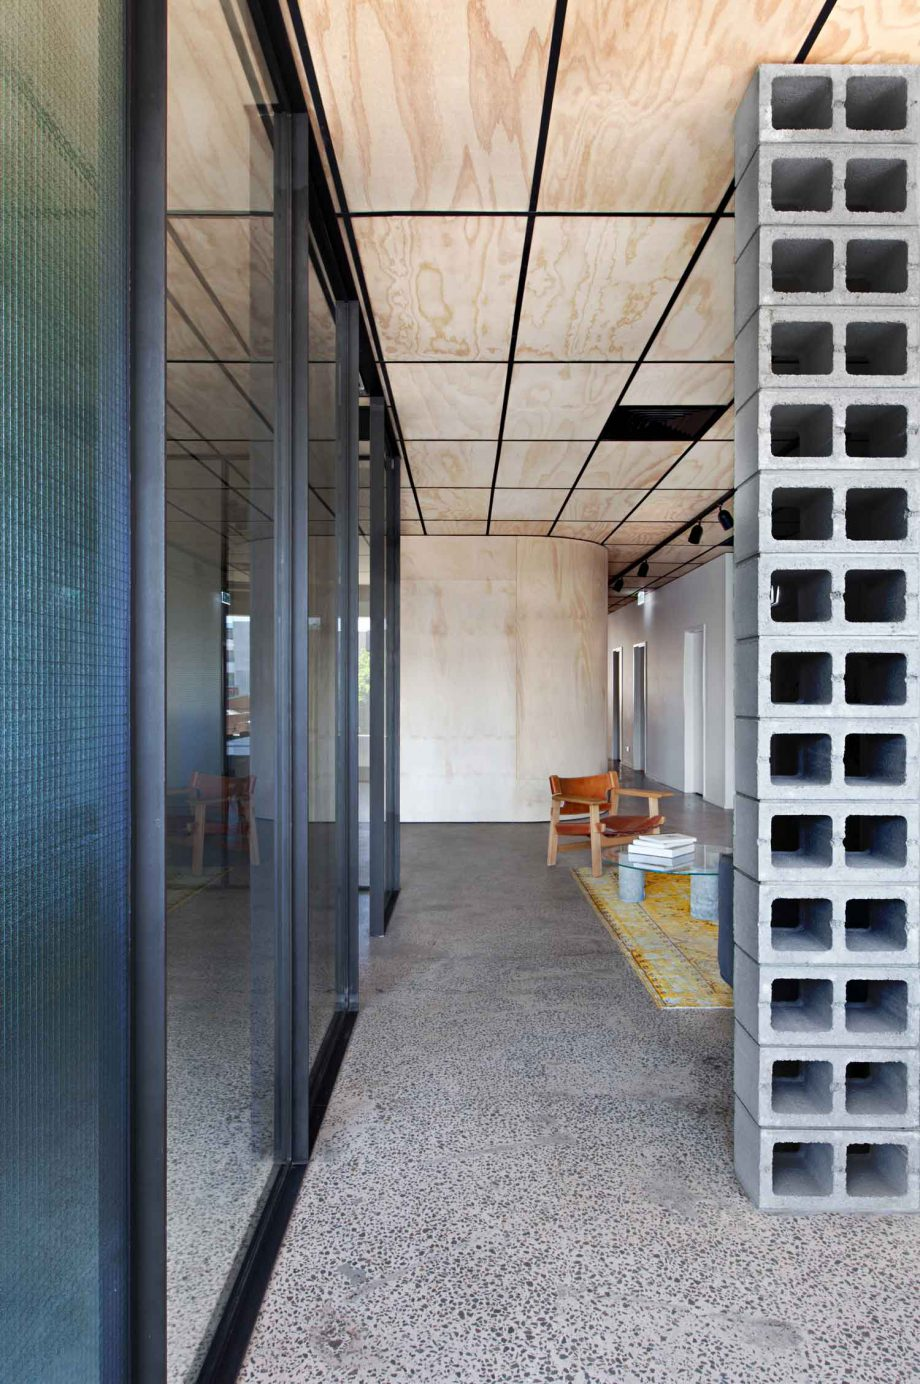 Clare-Cousins-Melbourne-Office-Blackwood-Street-Bunker-Yellowtrace-19